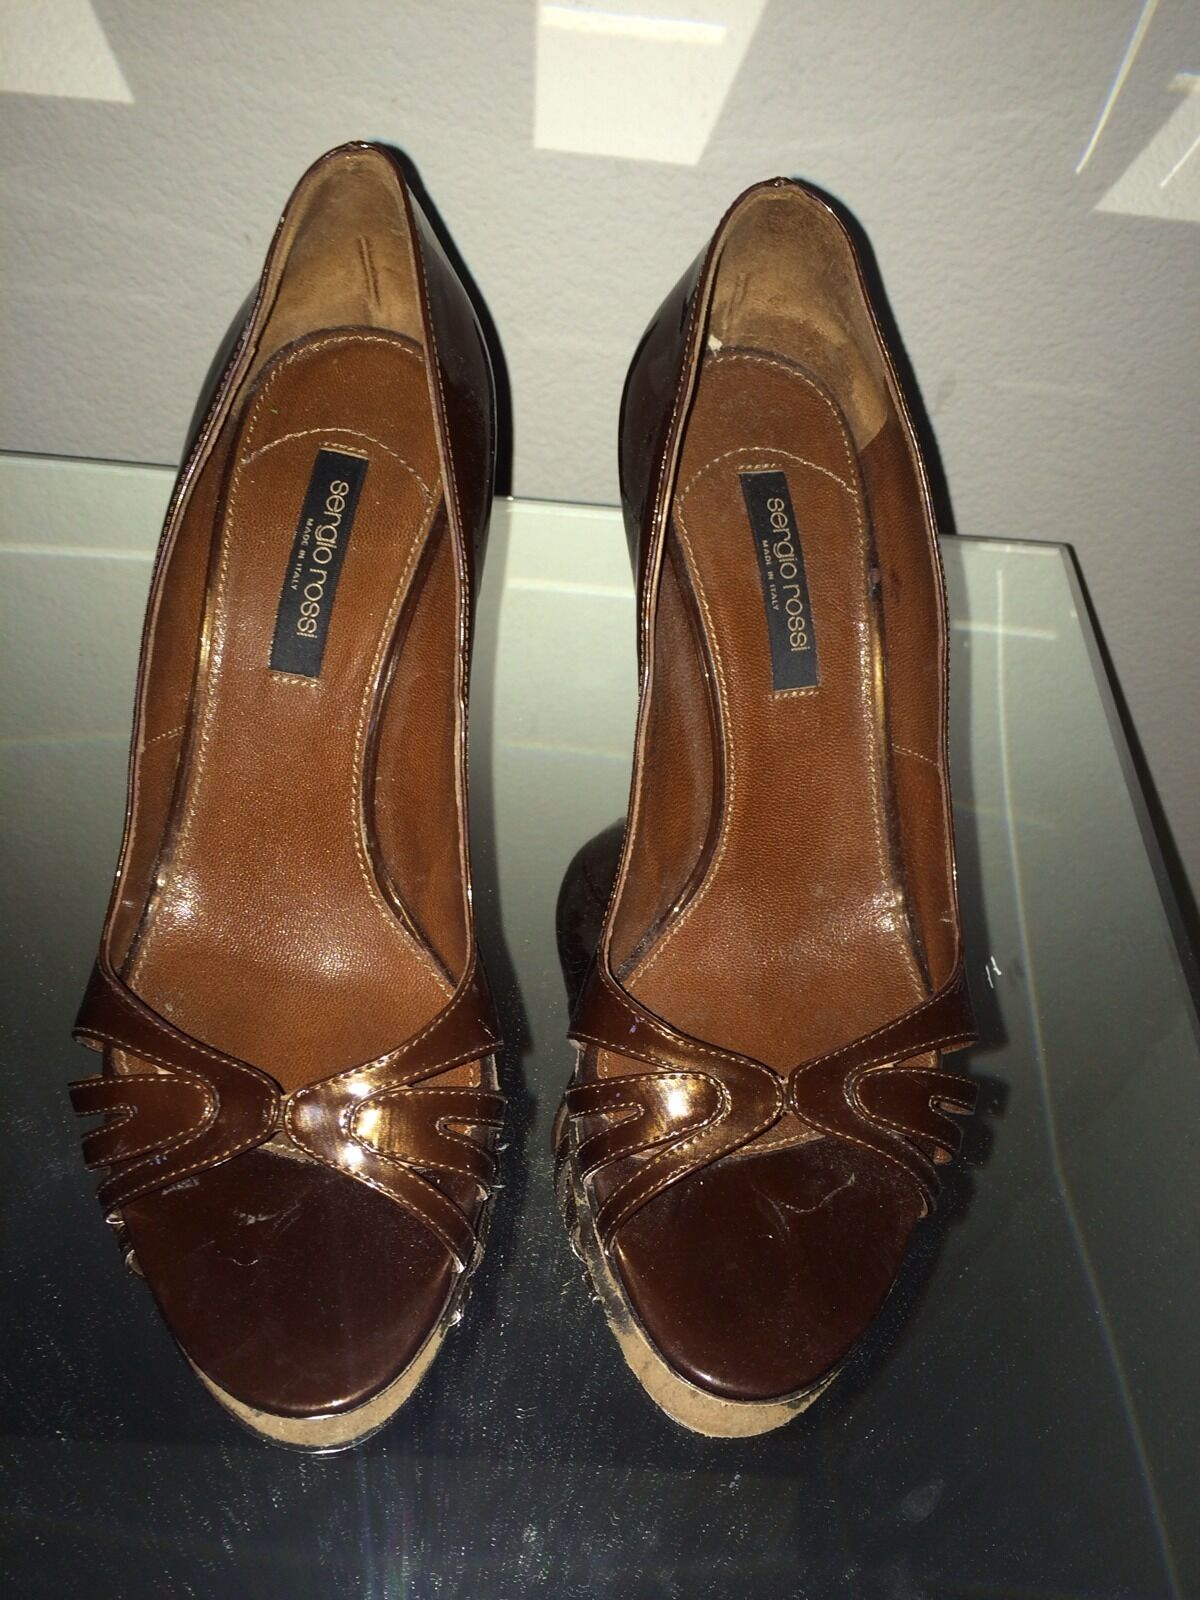 SERGIO ROSSI Brown Patent Leather Open Toe Pumps Heels Sz 38 (US 7.5)